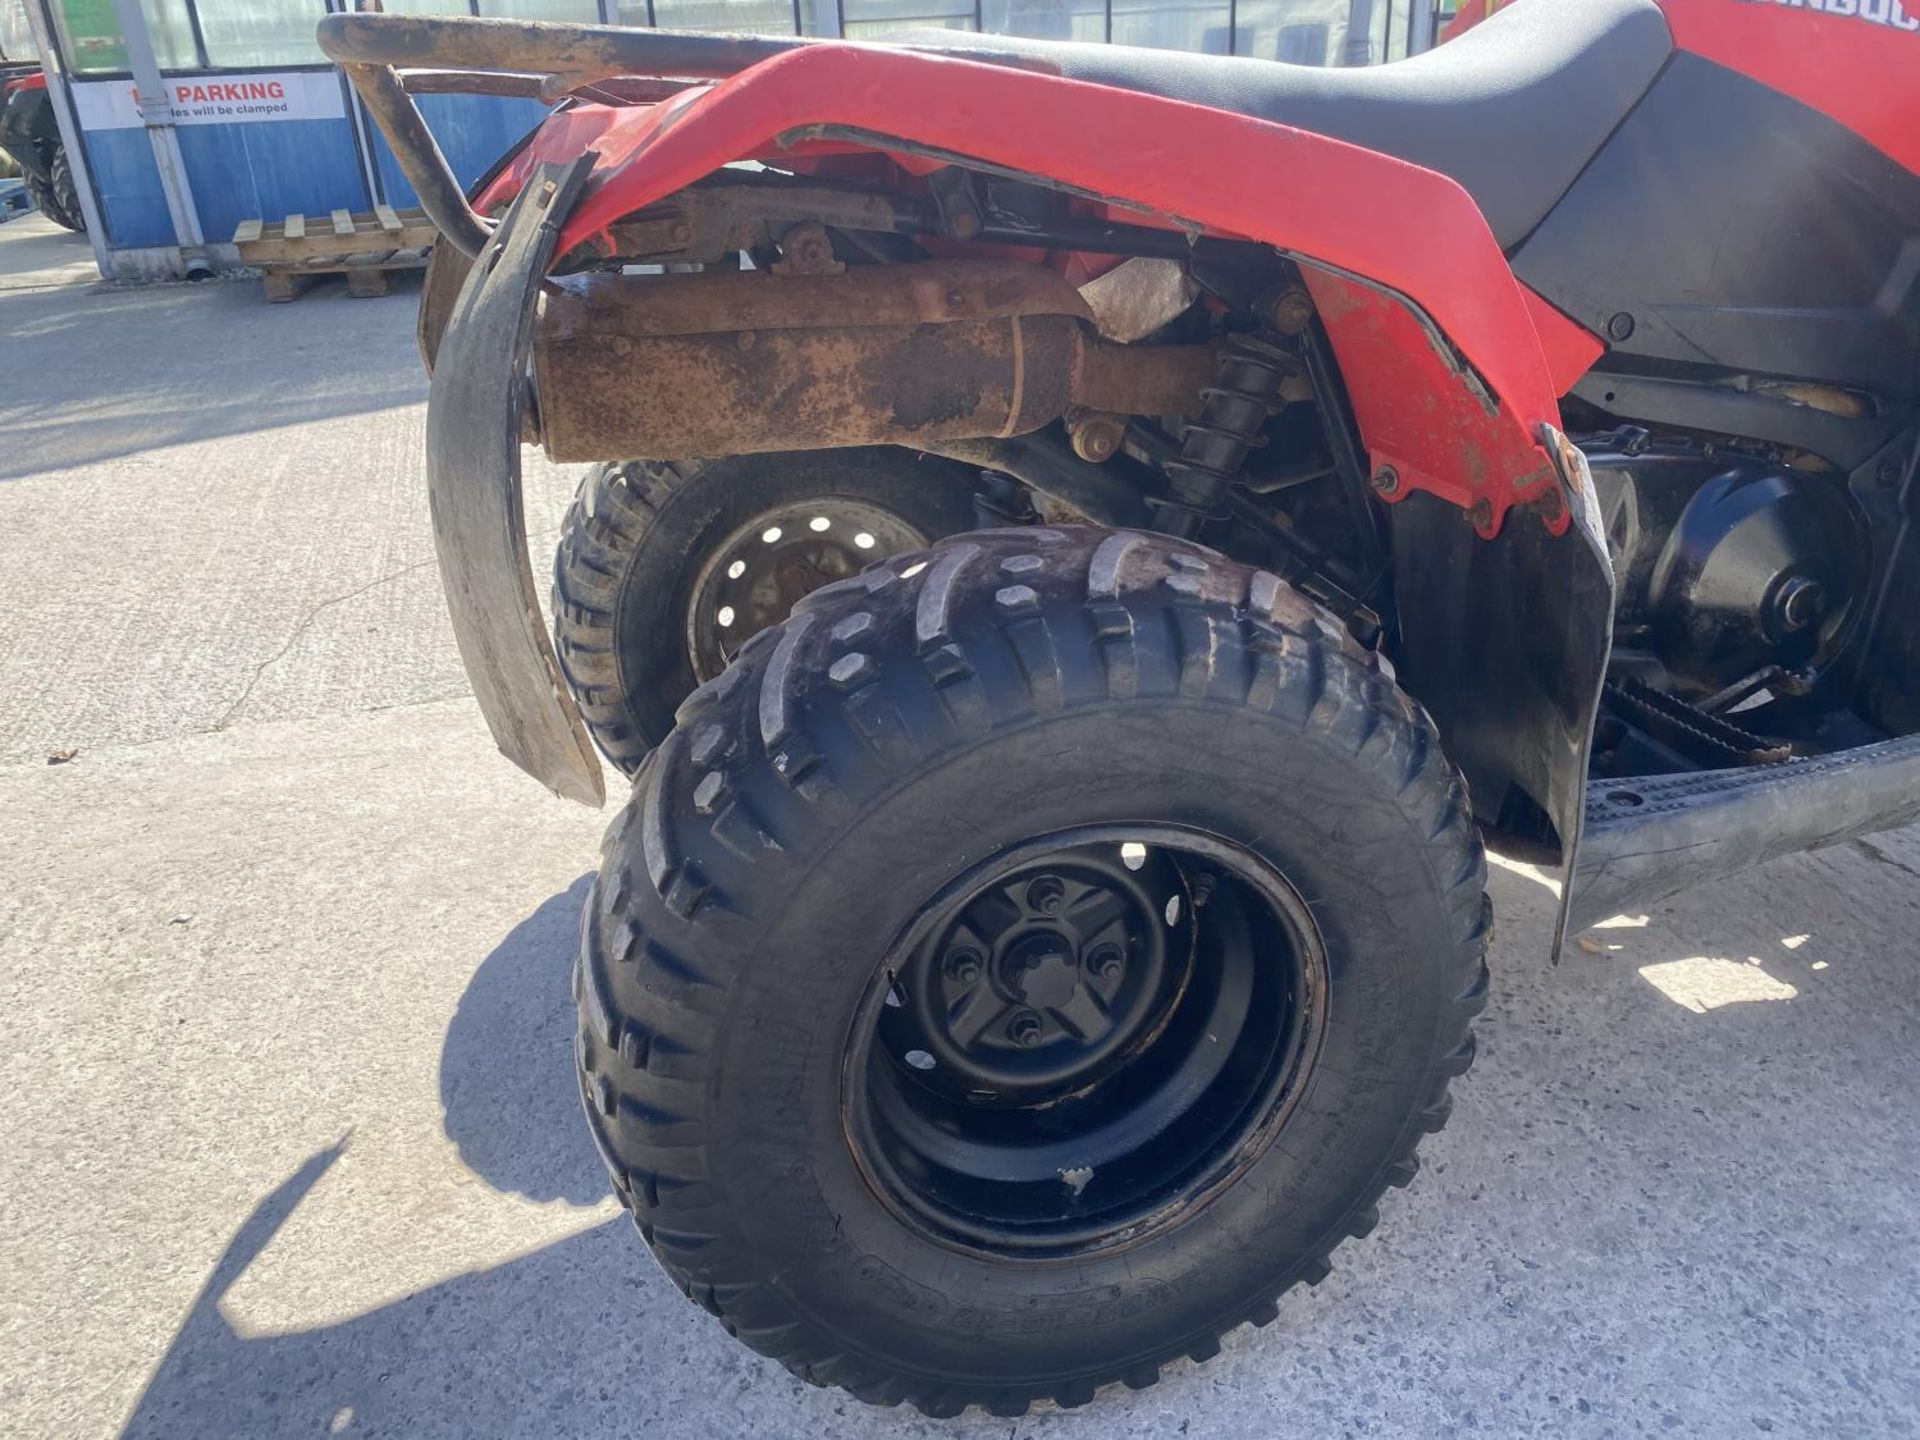 A 2013 SUZUKI KING QUAD, 400 CC AUTOMATIC - SEE VIDEO OF VEHICLE STARTING AND RUNNING - NO VAT - Image 6 of 12